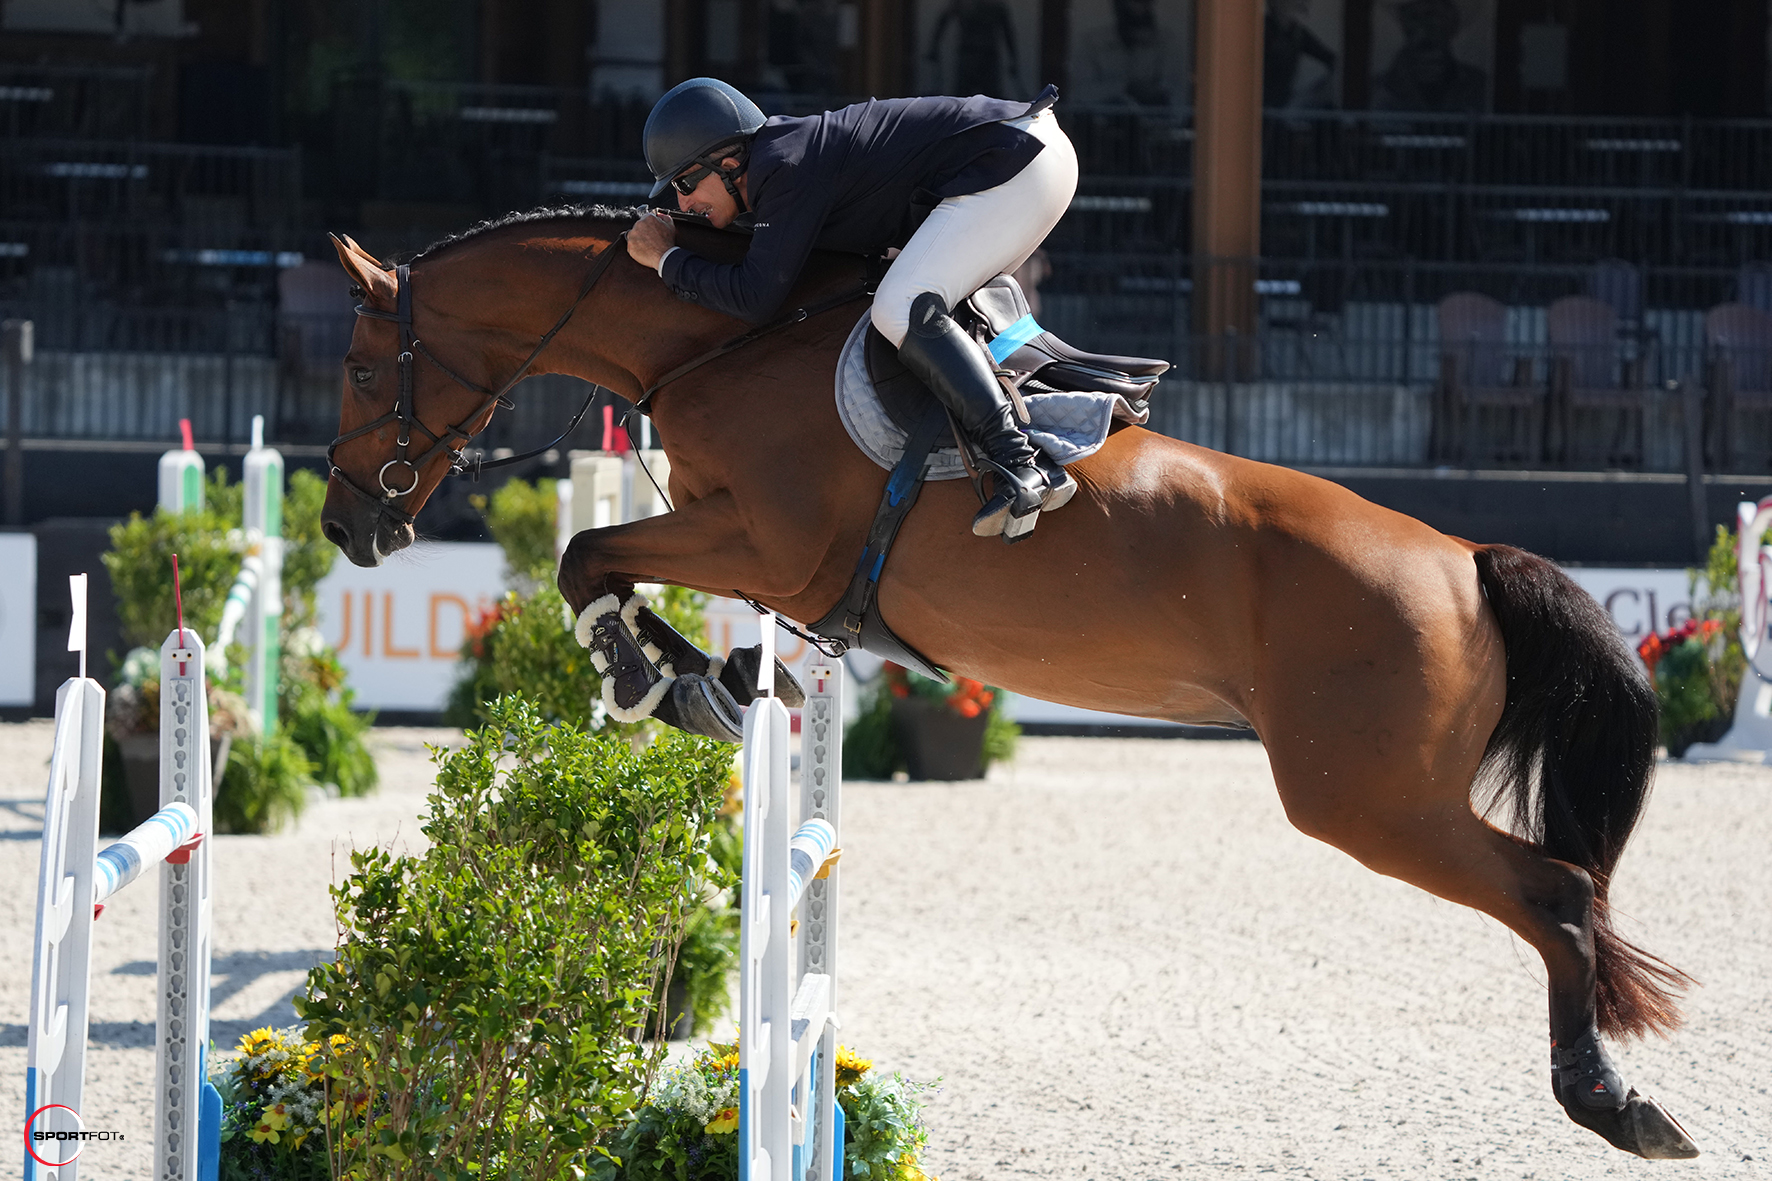 """Aaron Vale Begins with a Bang in $37,000 Horseware Ireland Welcome Stake CSI 2*: """"Hopefully we can keep it up"""""""